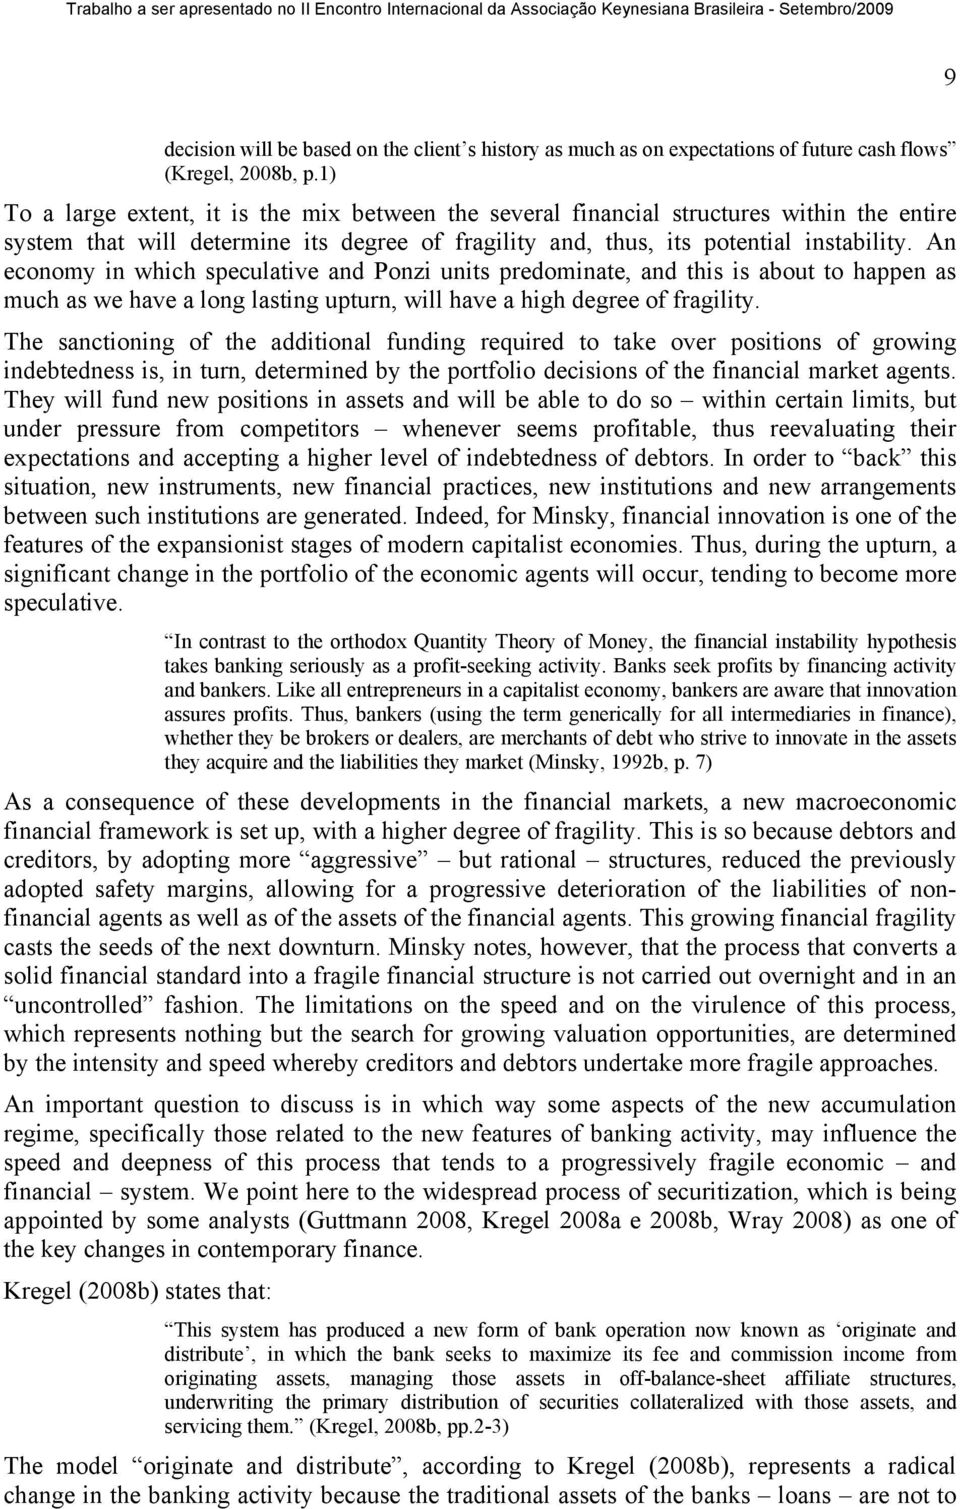 An economy in which speculative and Ponzi units predominate, and this is about to happen as much as we have a long lasting upturn, will have a high degree of fragility.